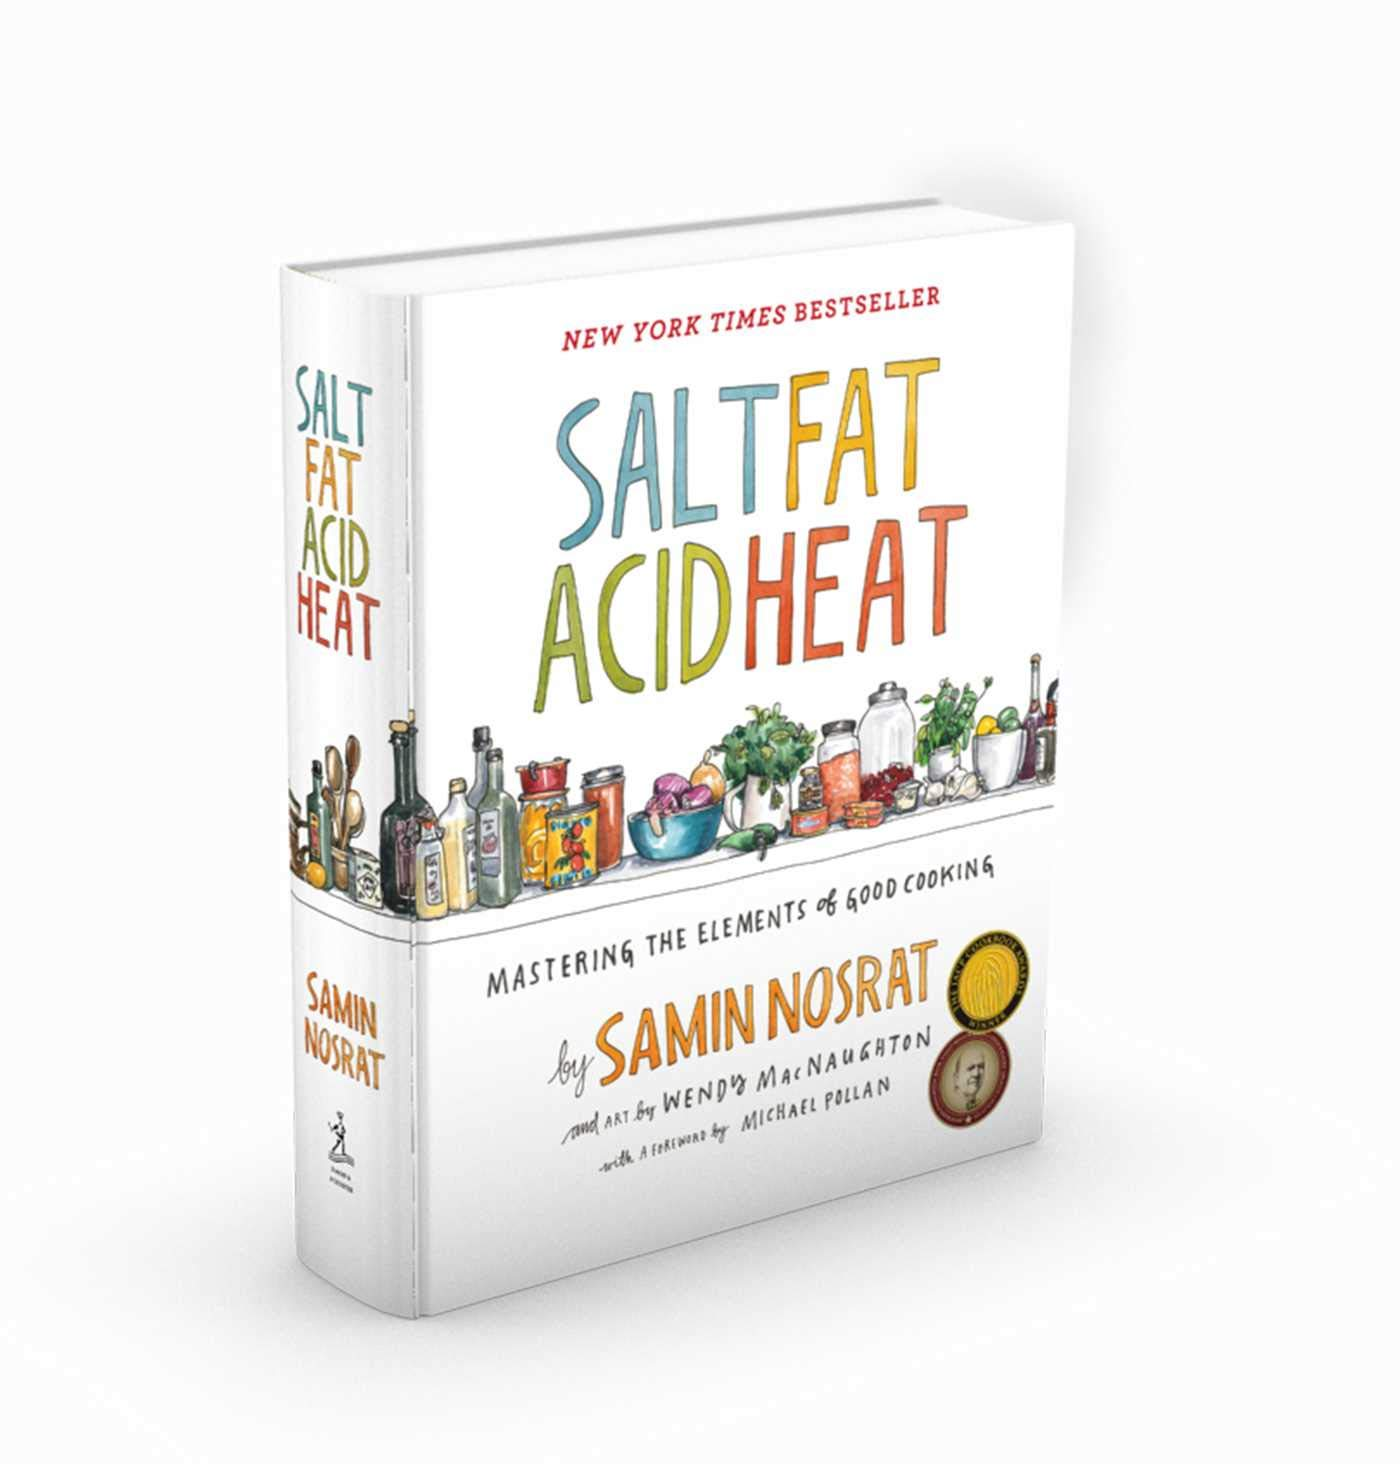 15.  Salt, Fat, Acid, Heat: Mastering the Elements of Good Cooking  This book not only teaches you the fundamentals of cooking, but also the science behind them, allowing you to understand WHY things taste good.